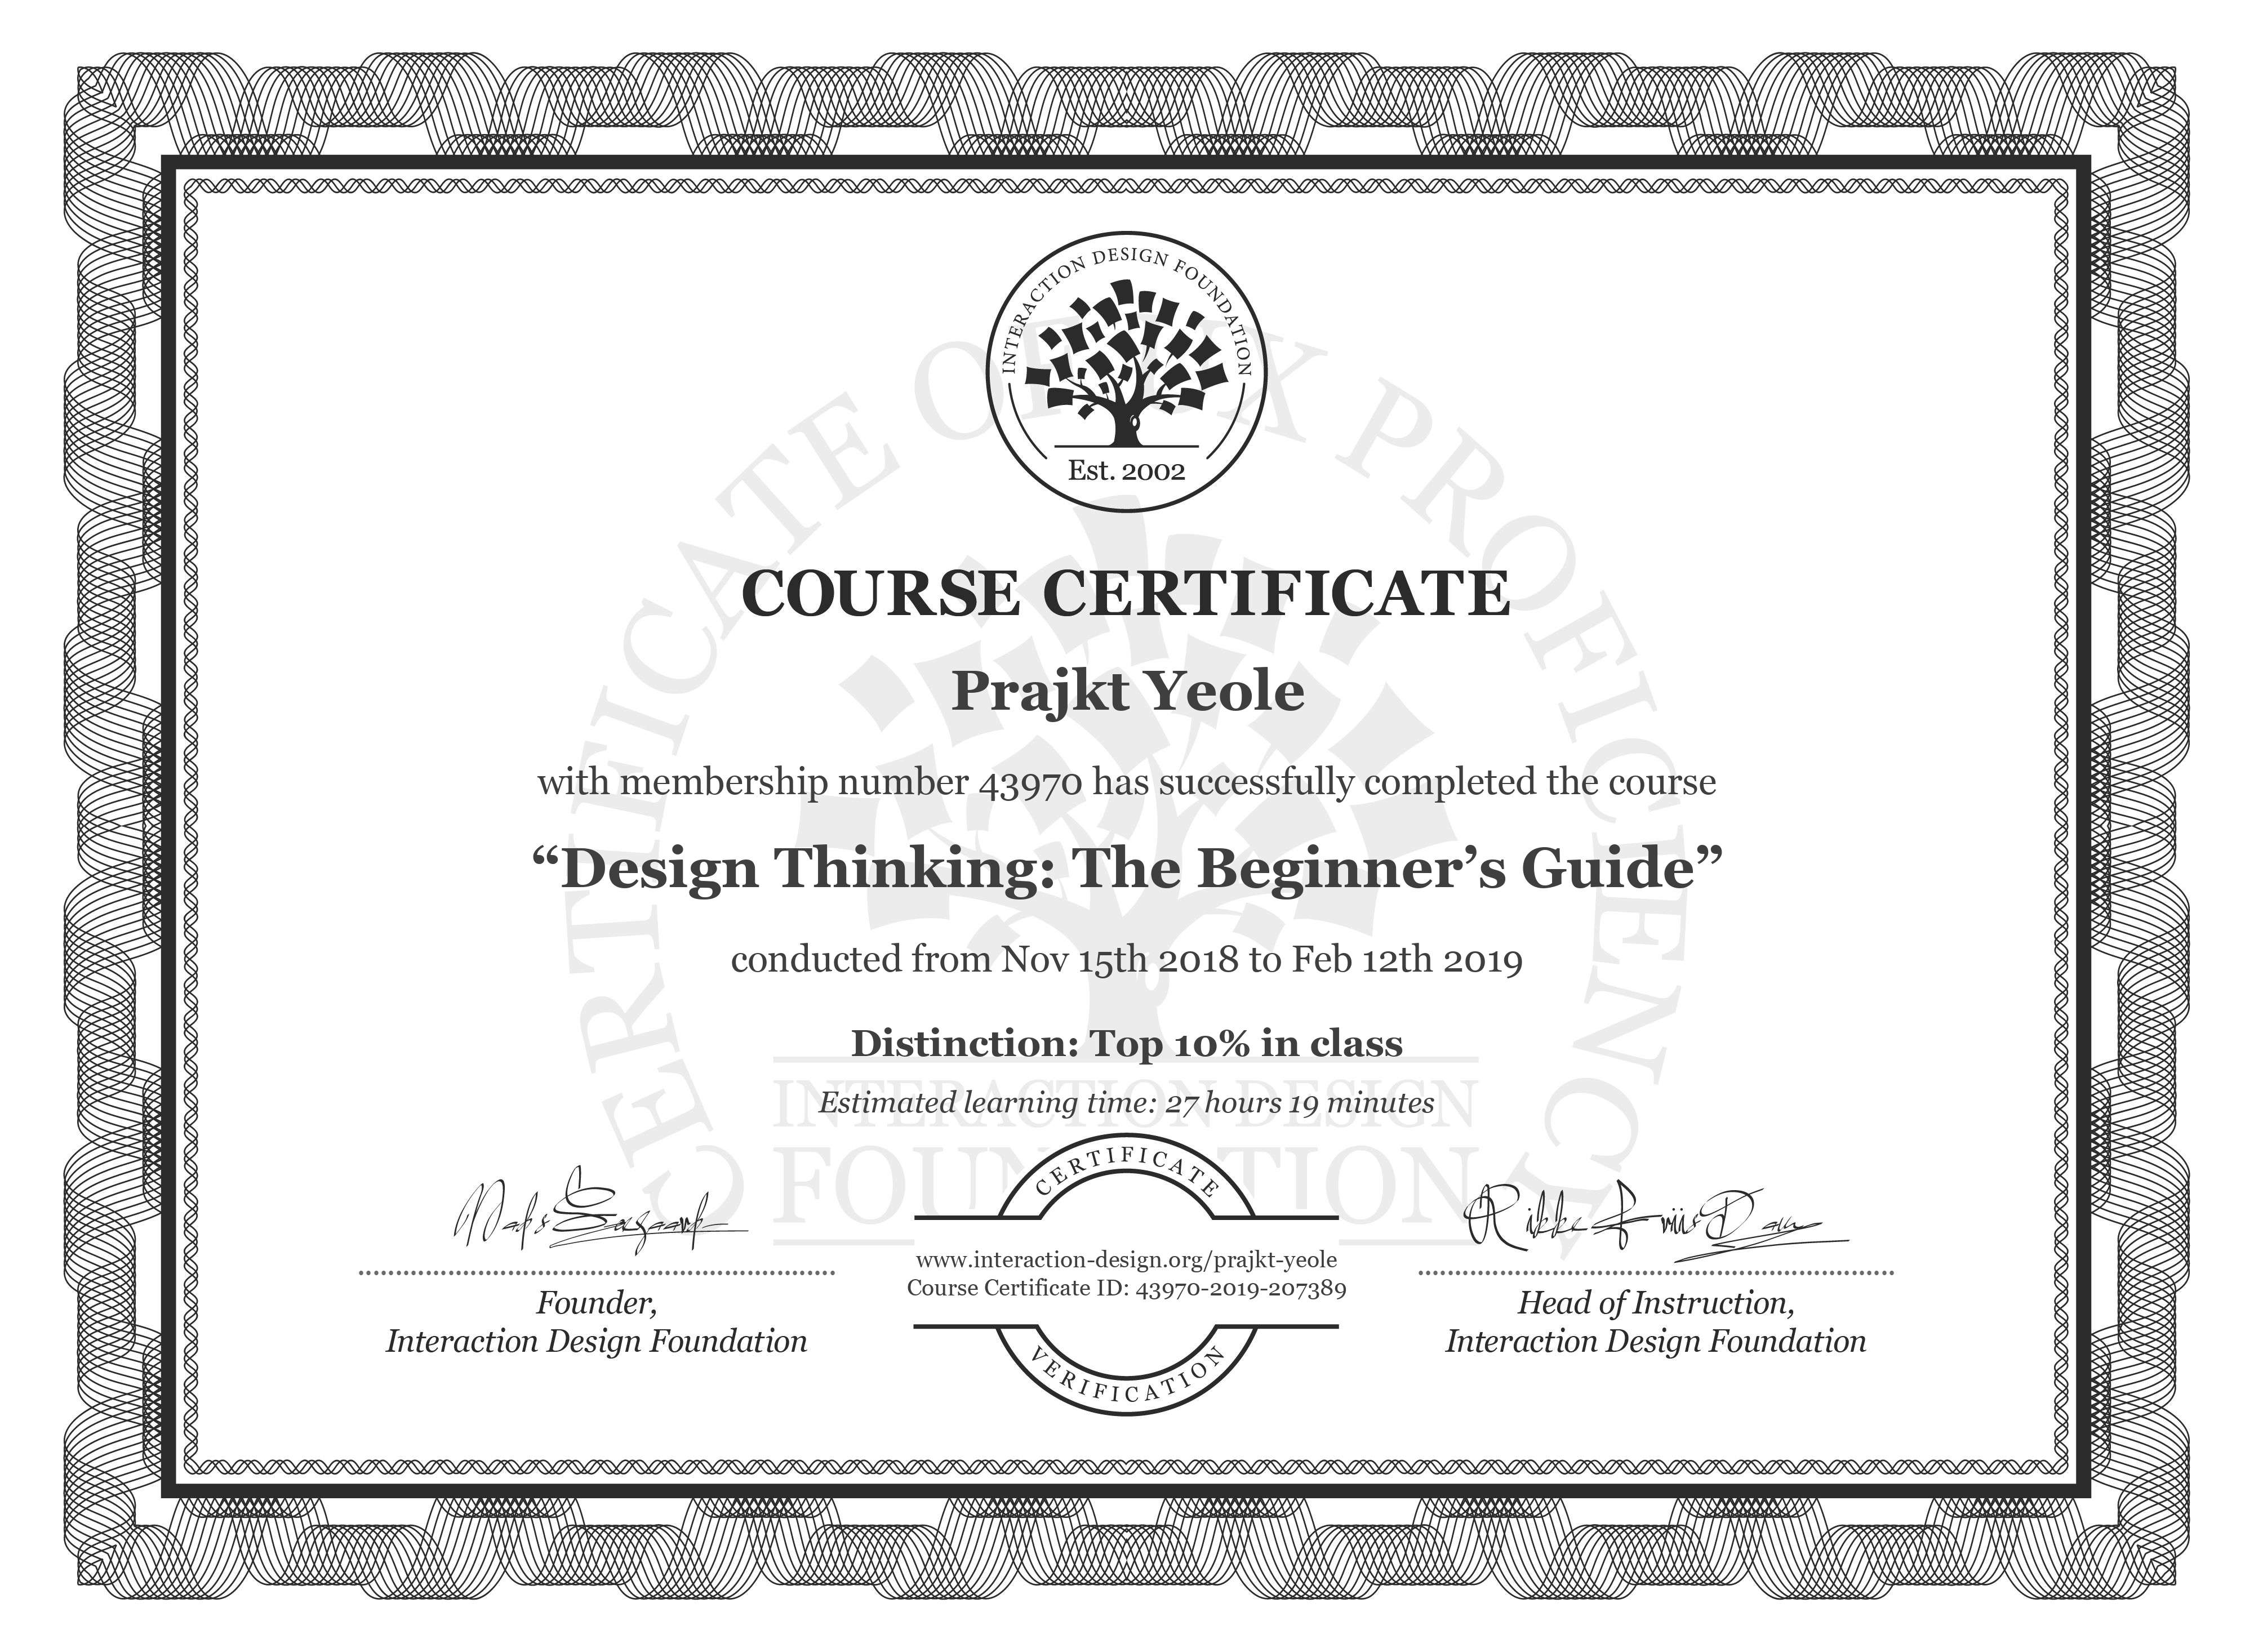 Prajkt Yeole's Course Certificate: Design Thinking: The Beginner's Guide